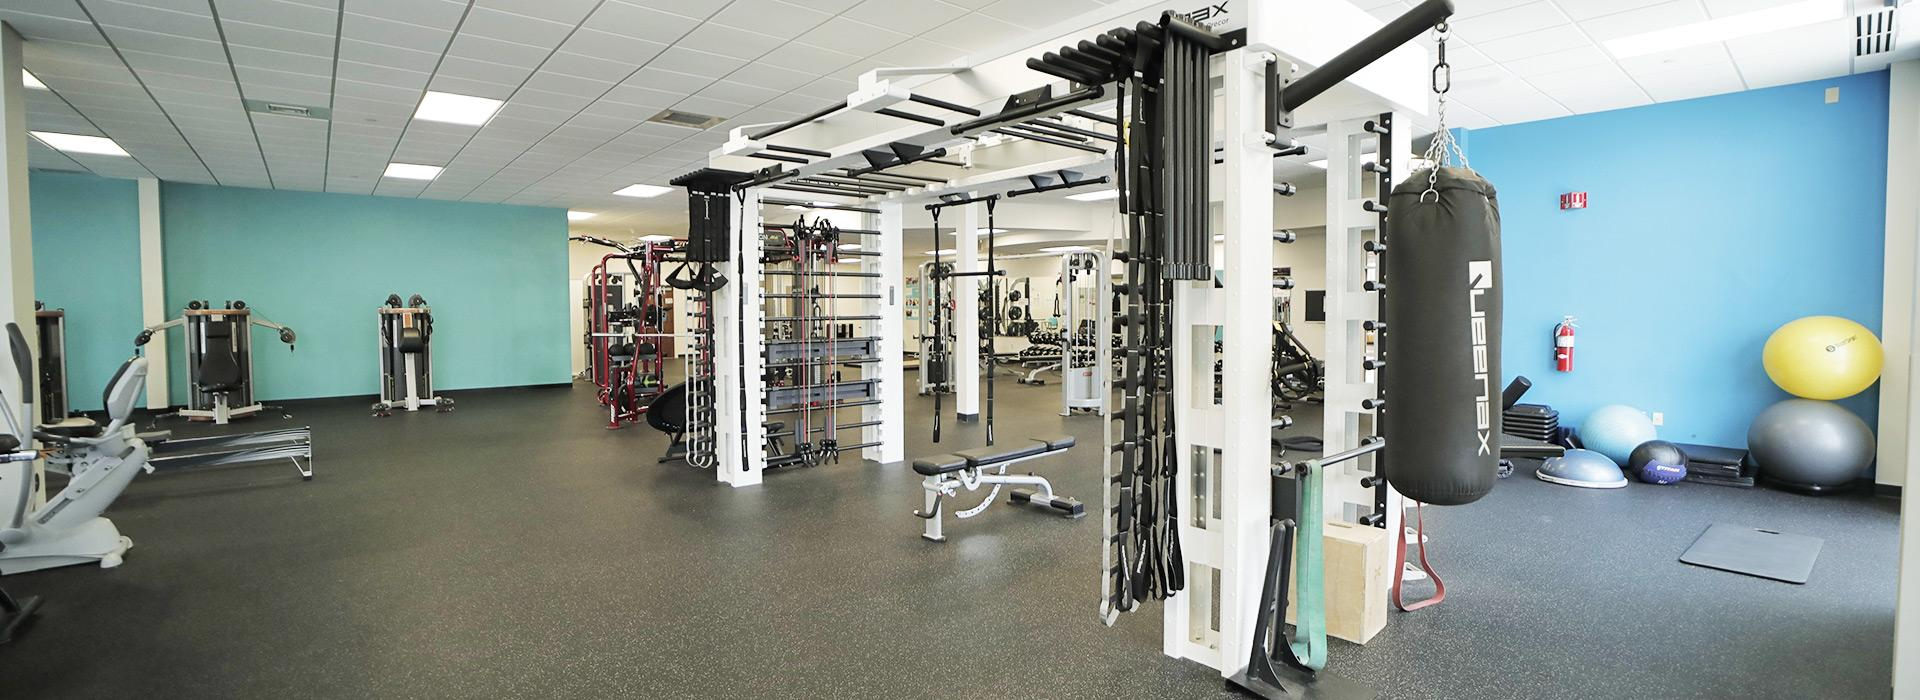 Queenax strength training equipment at the YMCA at Edinburgh